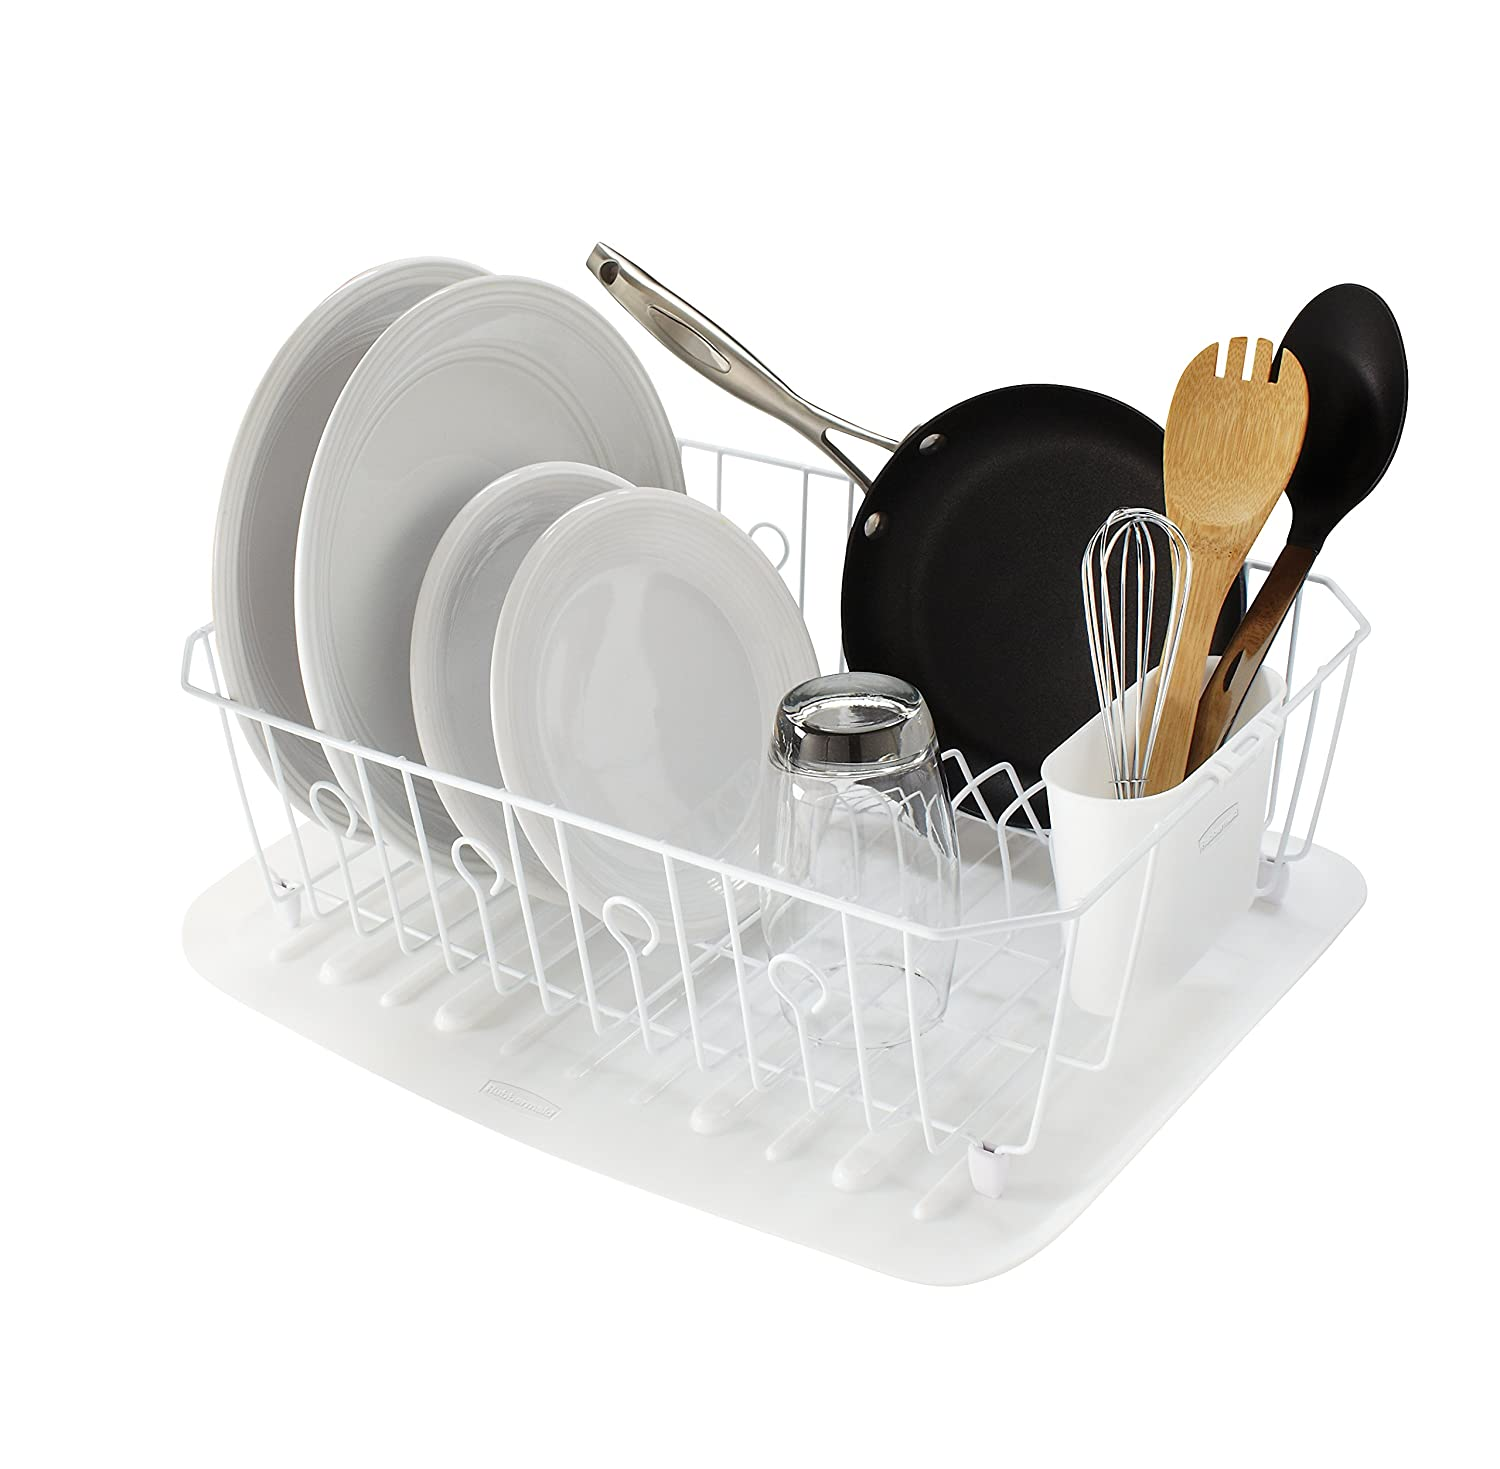 rubbermaid antimicrobial in sink dish drainer with